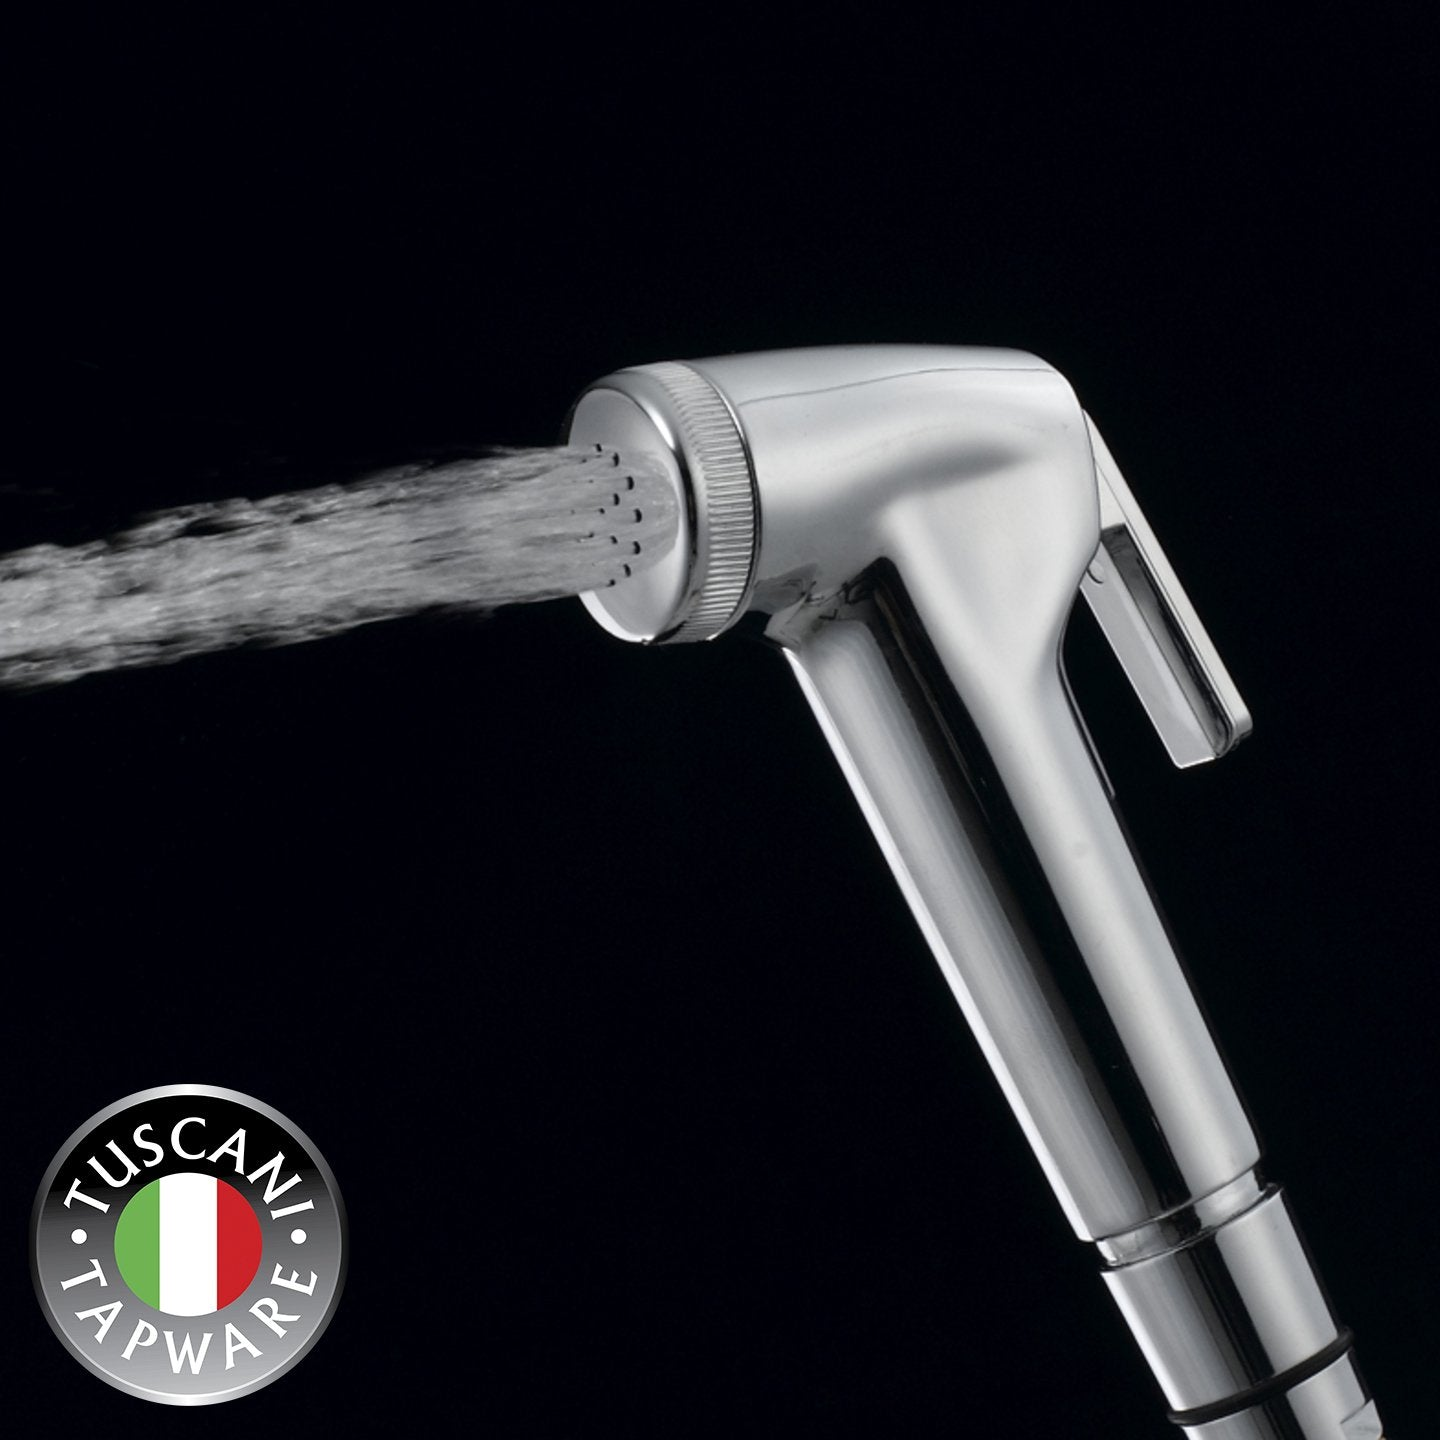 ROBUSTO Series - Bidet / HandSpray Only